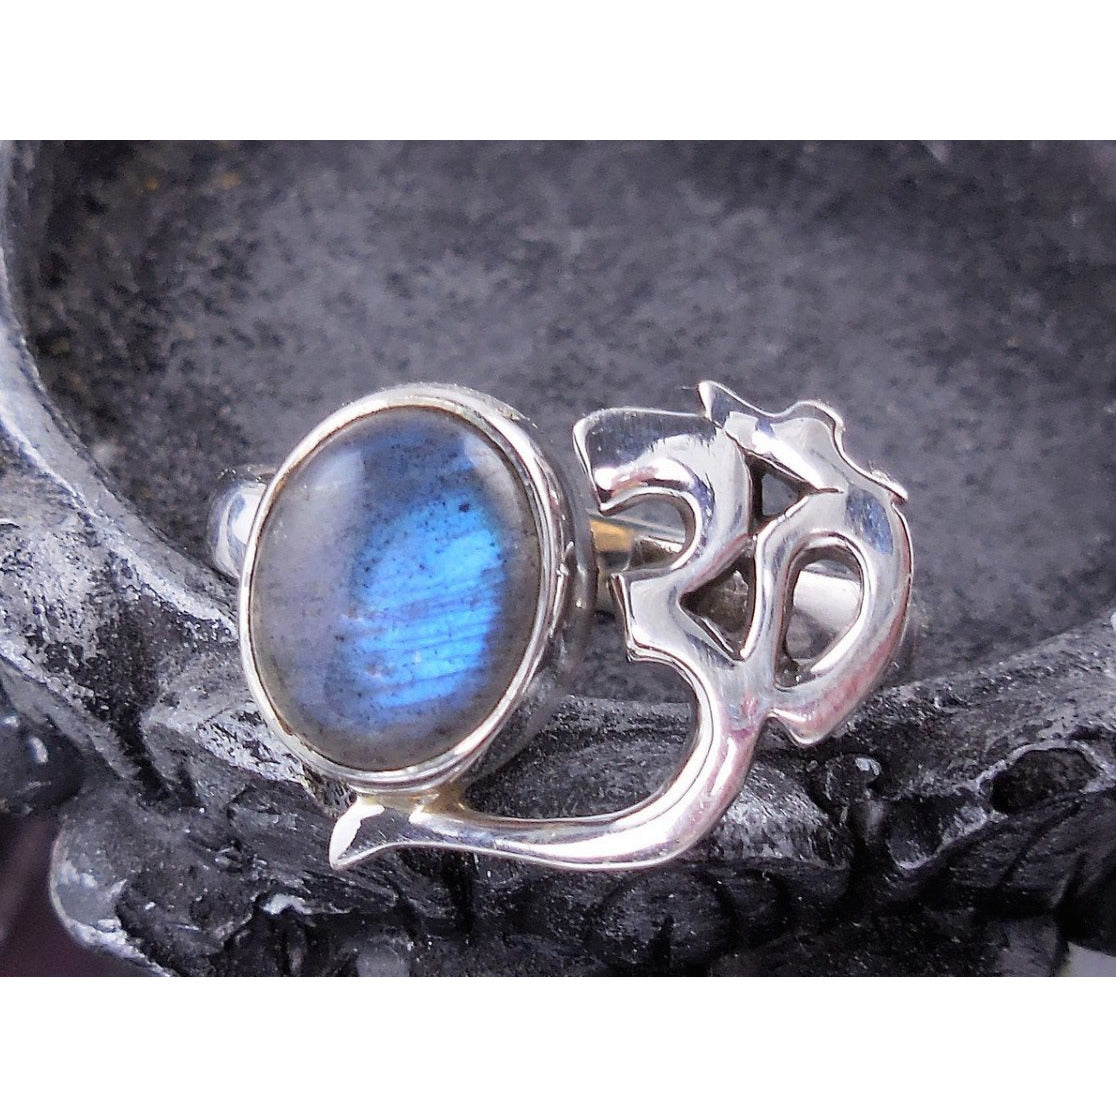 Labradorite Sterling Silver Ohm Ring – Size 7.75